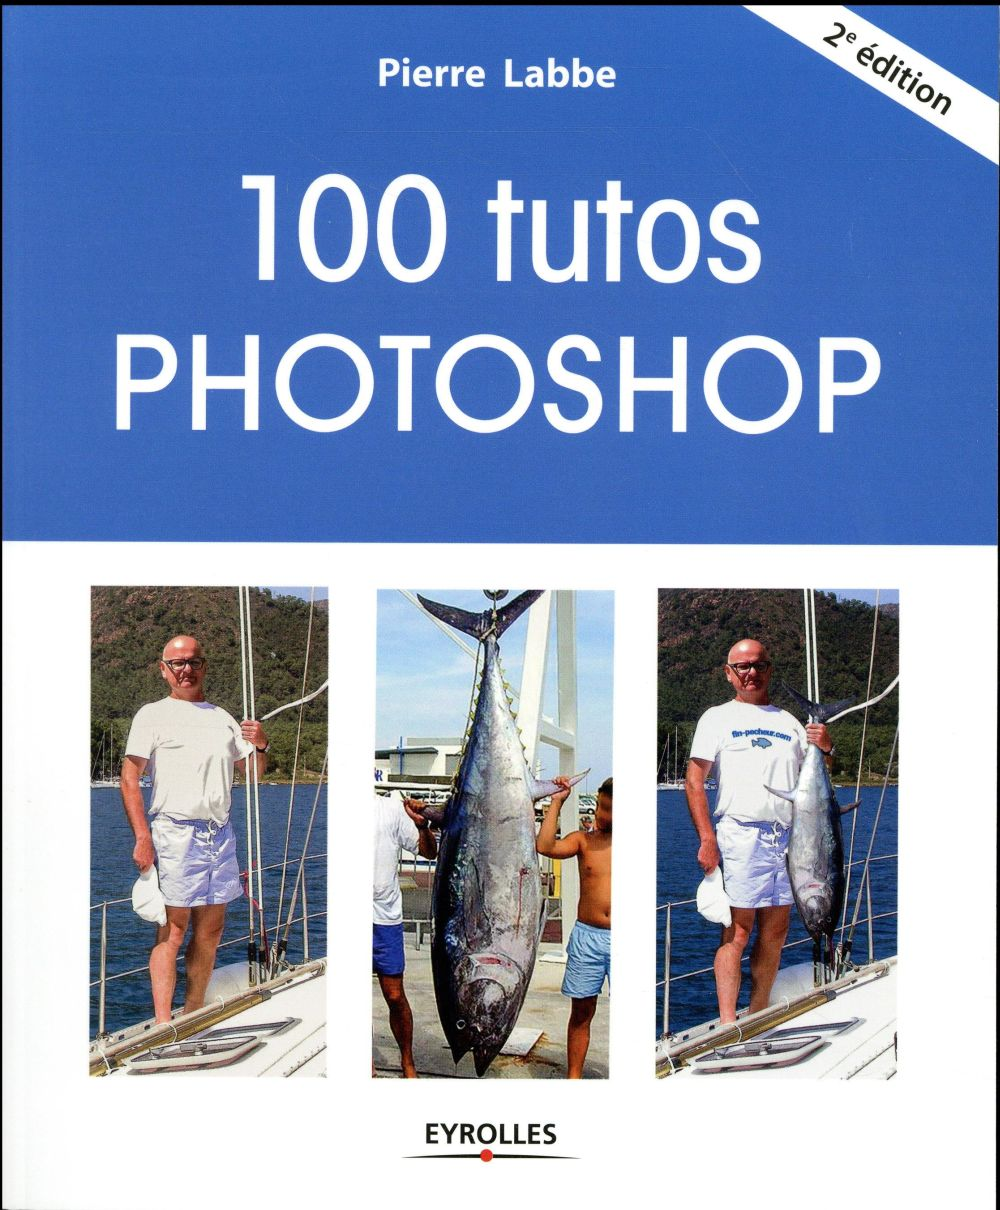 100 tutos Photoshop (2e édition)